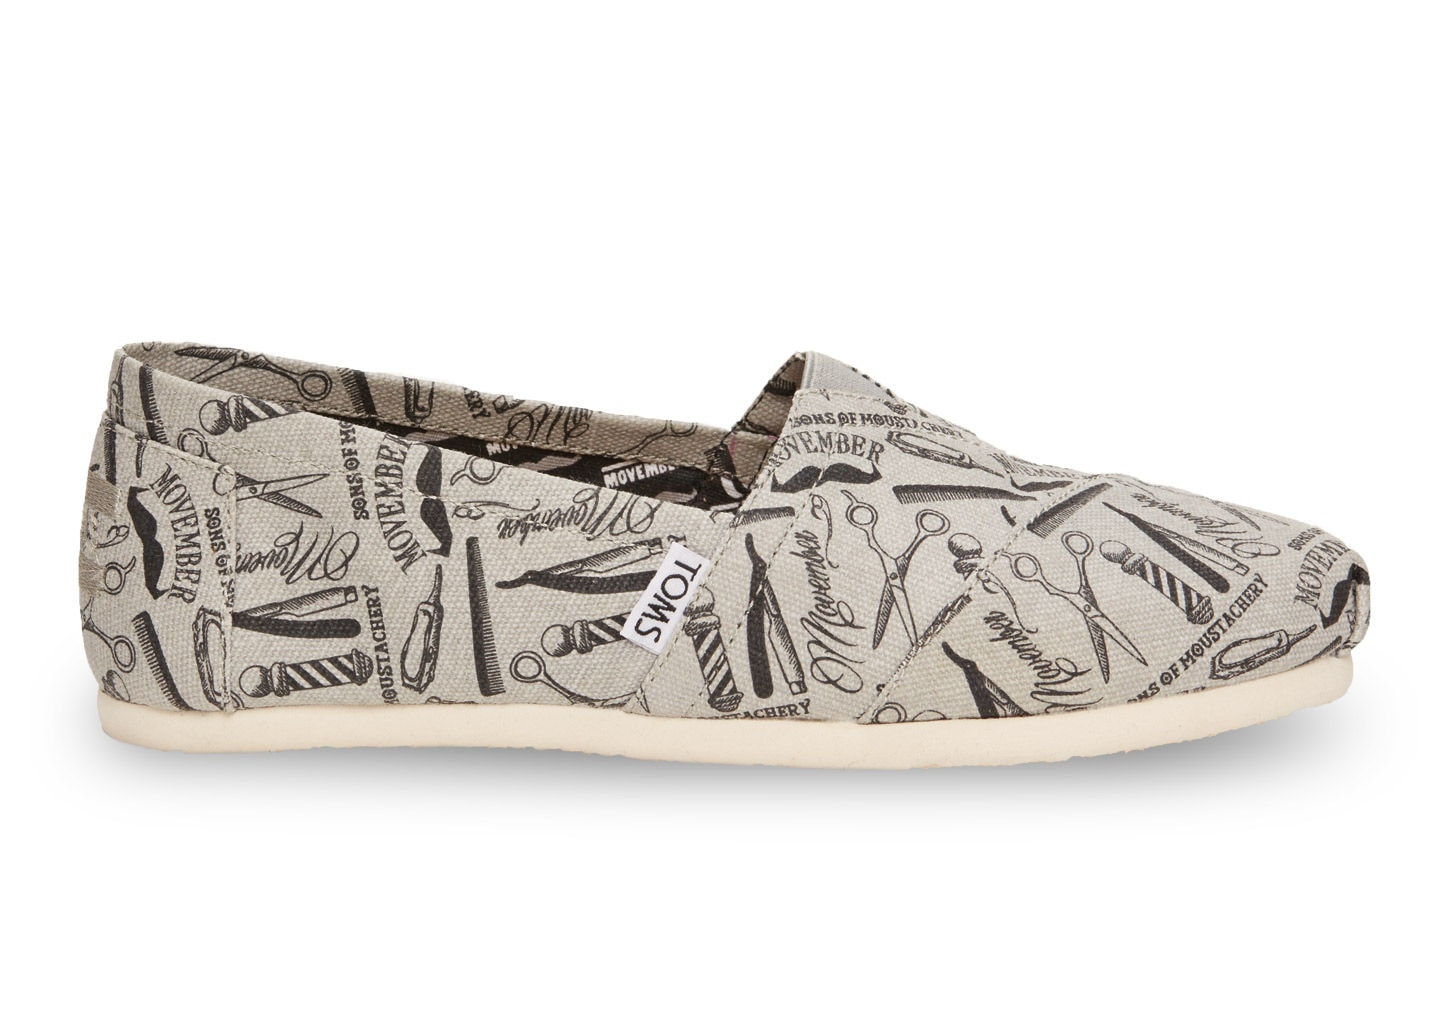 Details: Find the lowest prices on TOMS shoes for women, men and kids including sneakers, classic styles, sandals, boots and all other styles.